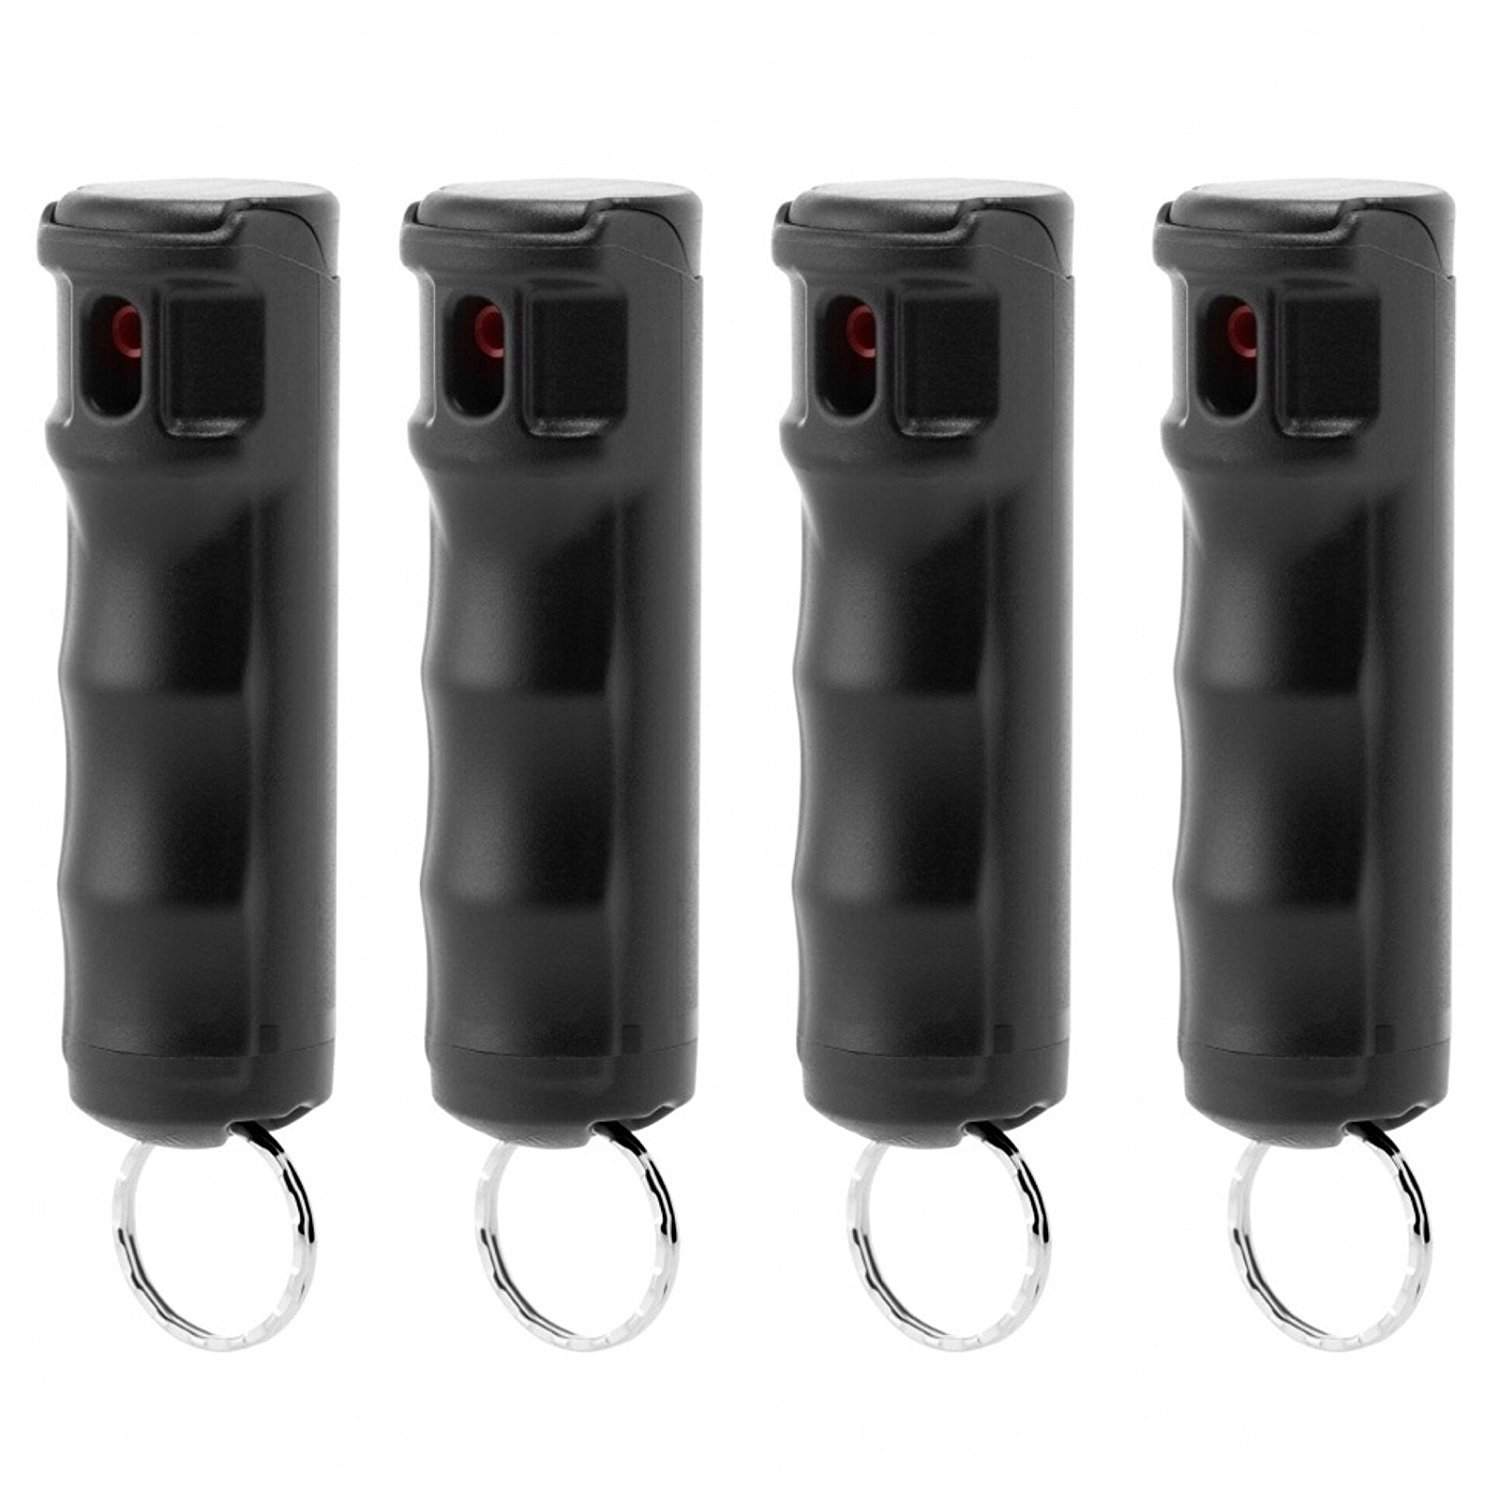 Mace Police Strength Pepper Spray with Invisible UV Identifying Dye, Keyguard Hard Case Flip Top with Key Ring and Safety Trigger, 10 Blast Stream of Up to 10 Feet (Security) (Black 4-Pack) by Mace